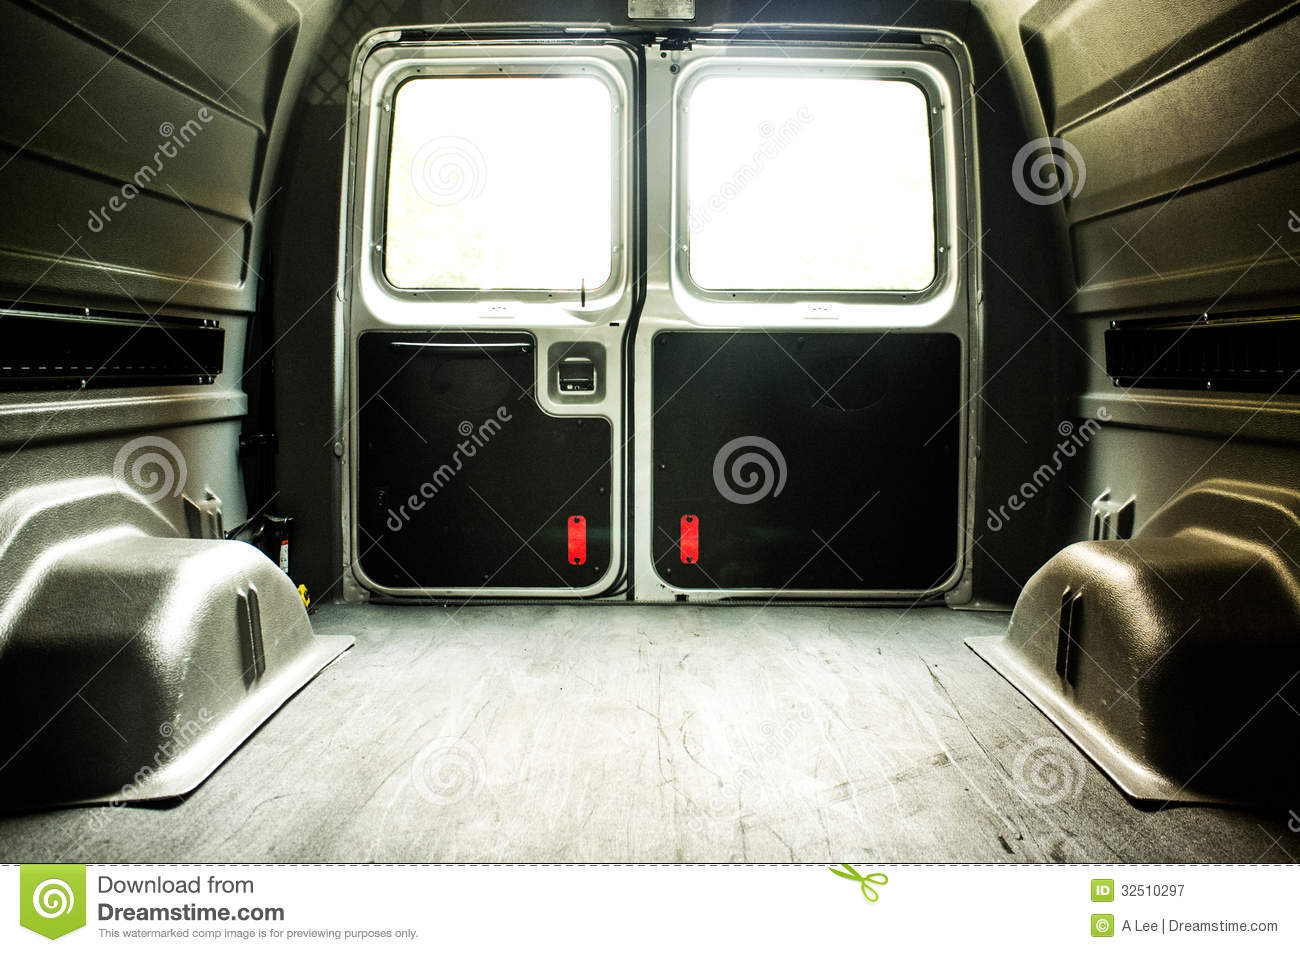 Royalty Free Stock Photography Interior Empty Cargo Van Ford E Series Econoline Image32510297